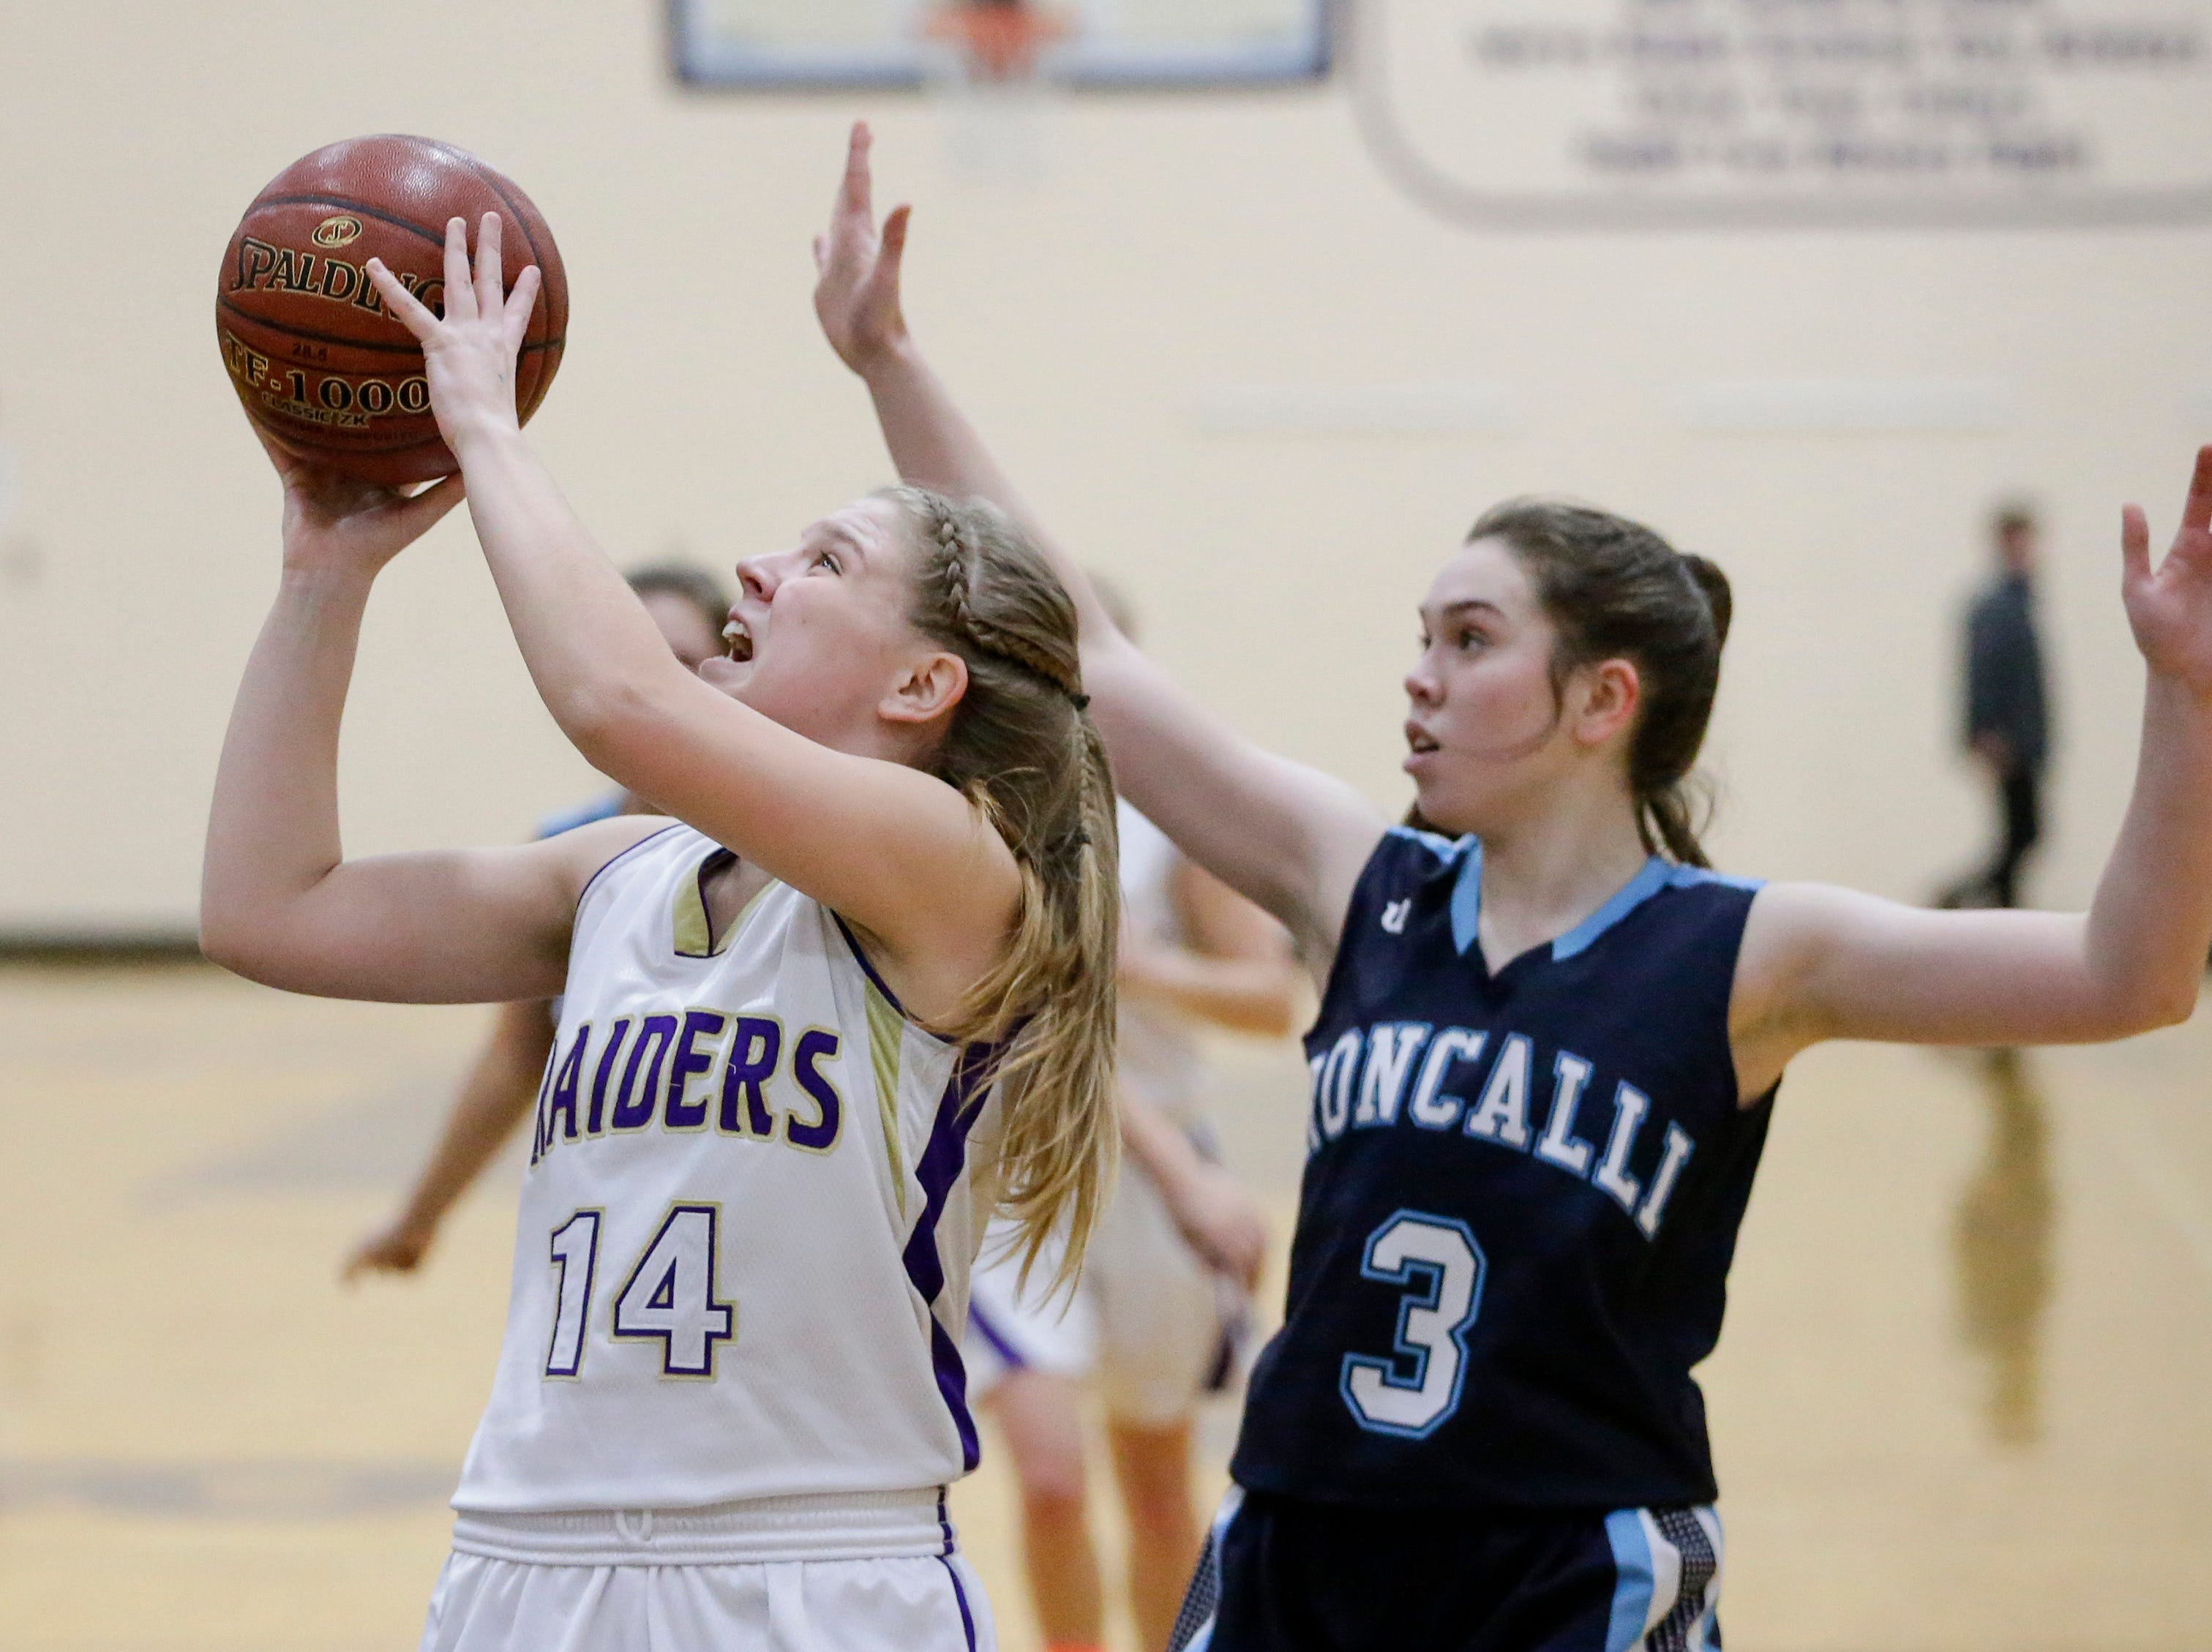 Two Rivers' Andrea Henrickson (14) shoots against Roncalli at Two Rivers High School Friday, February 1, 2019, in Two Rivers, Wis. Joshua Clark/USA TODAY NETWORK-Wisconsin